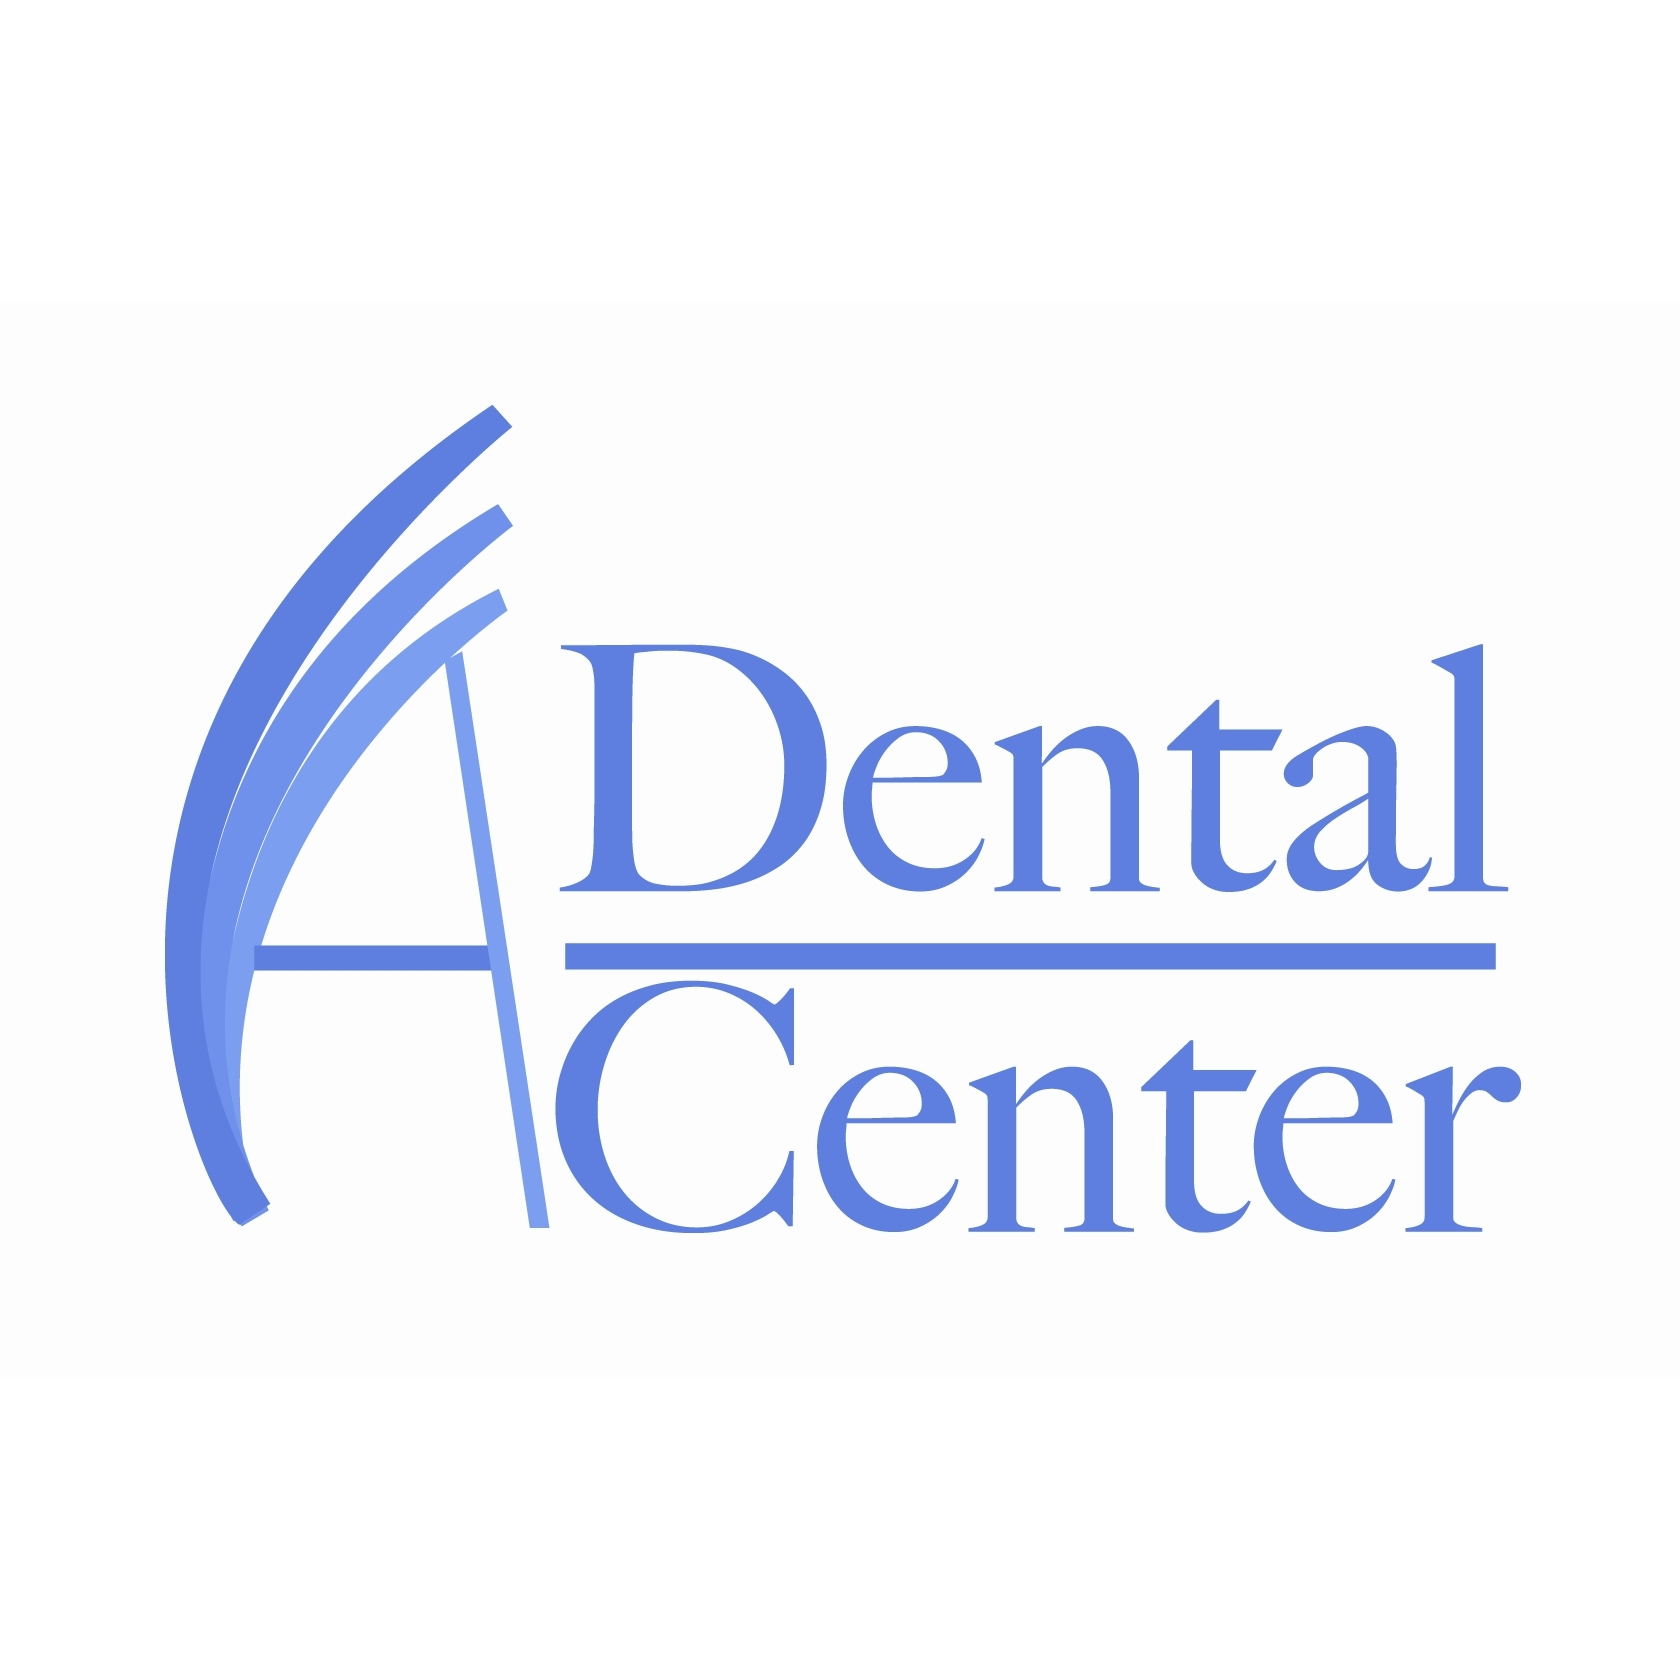 A-Dental Center image 4